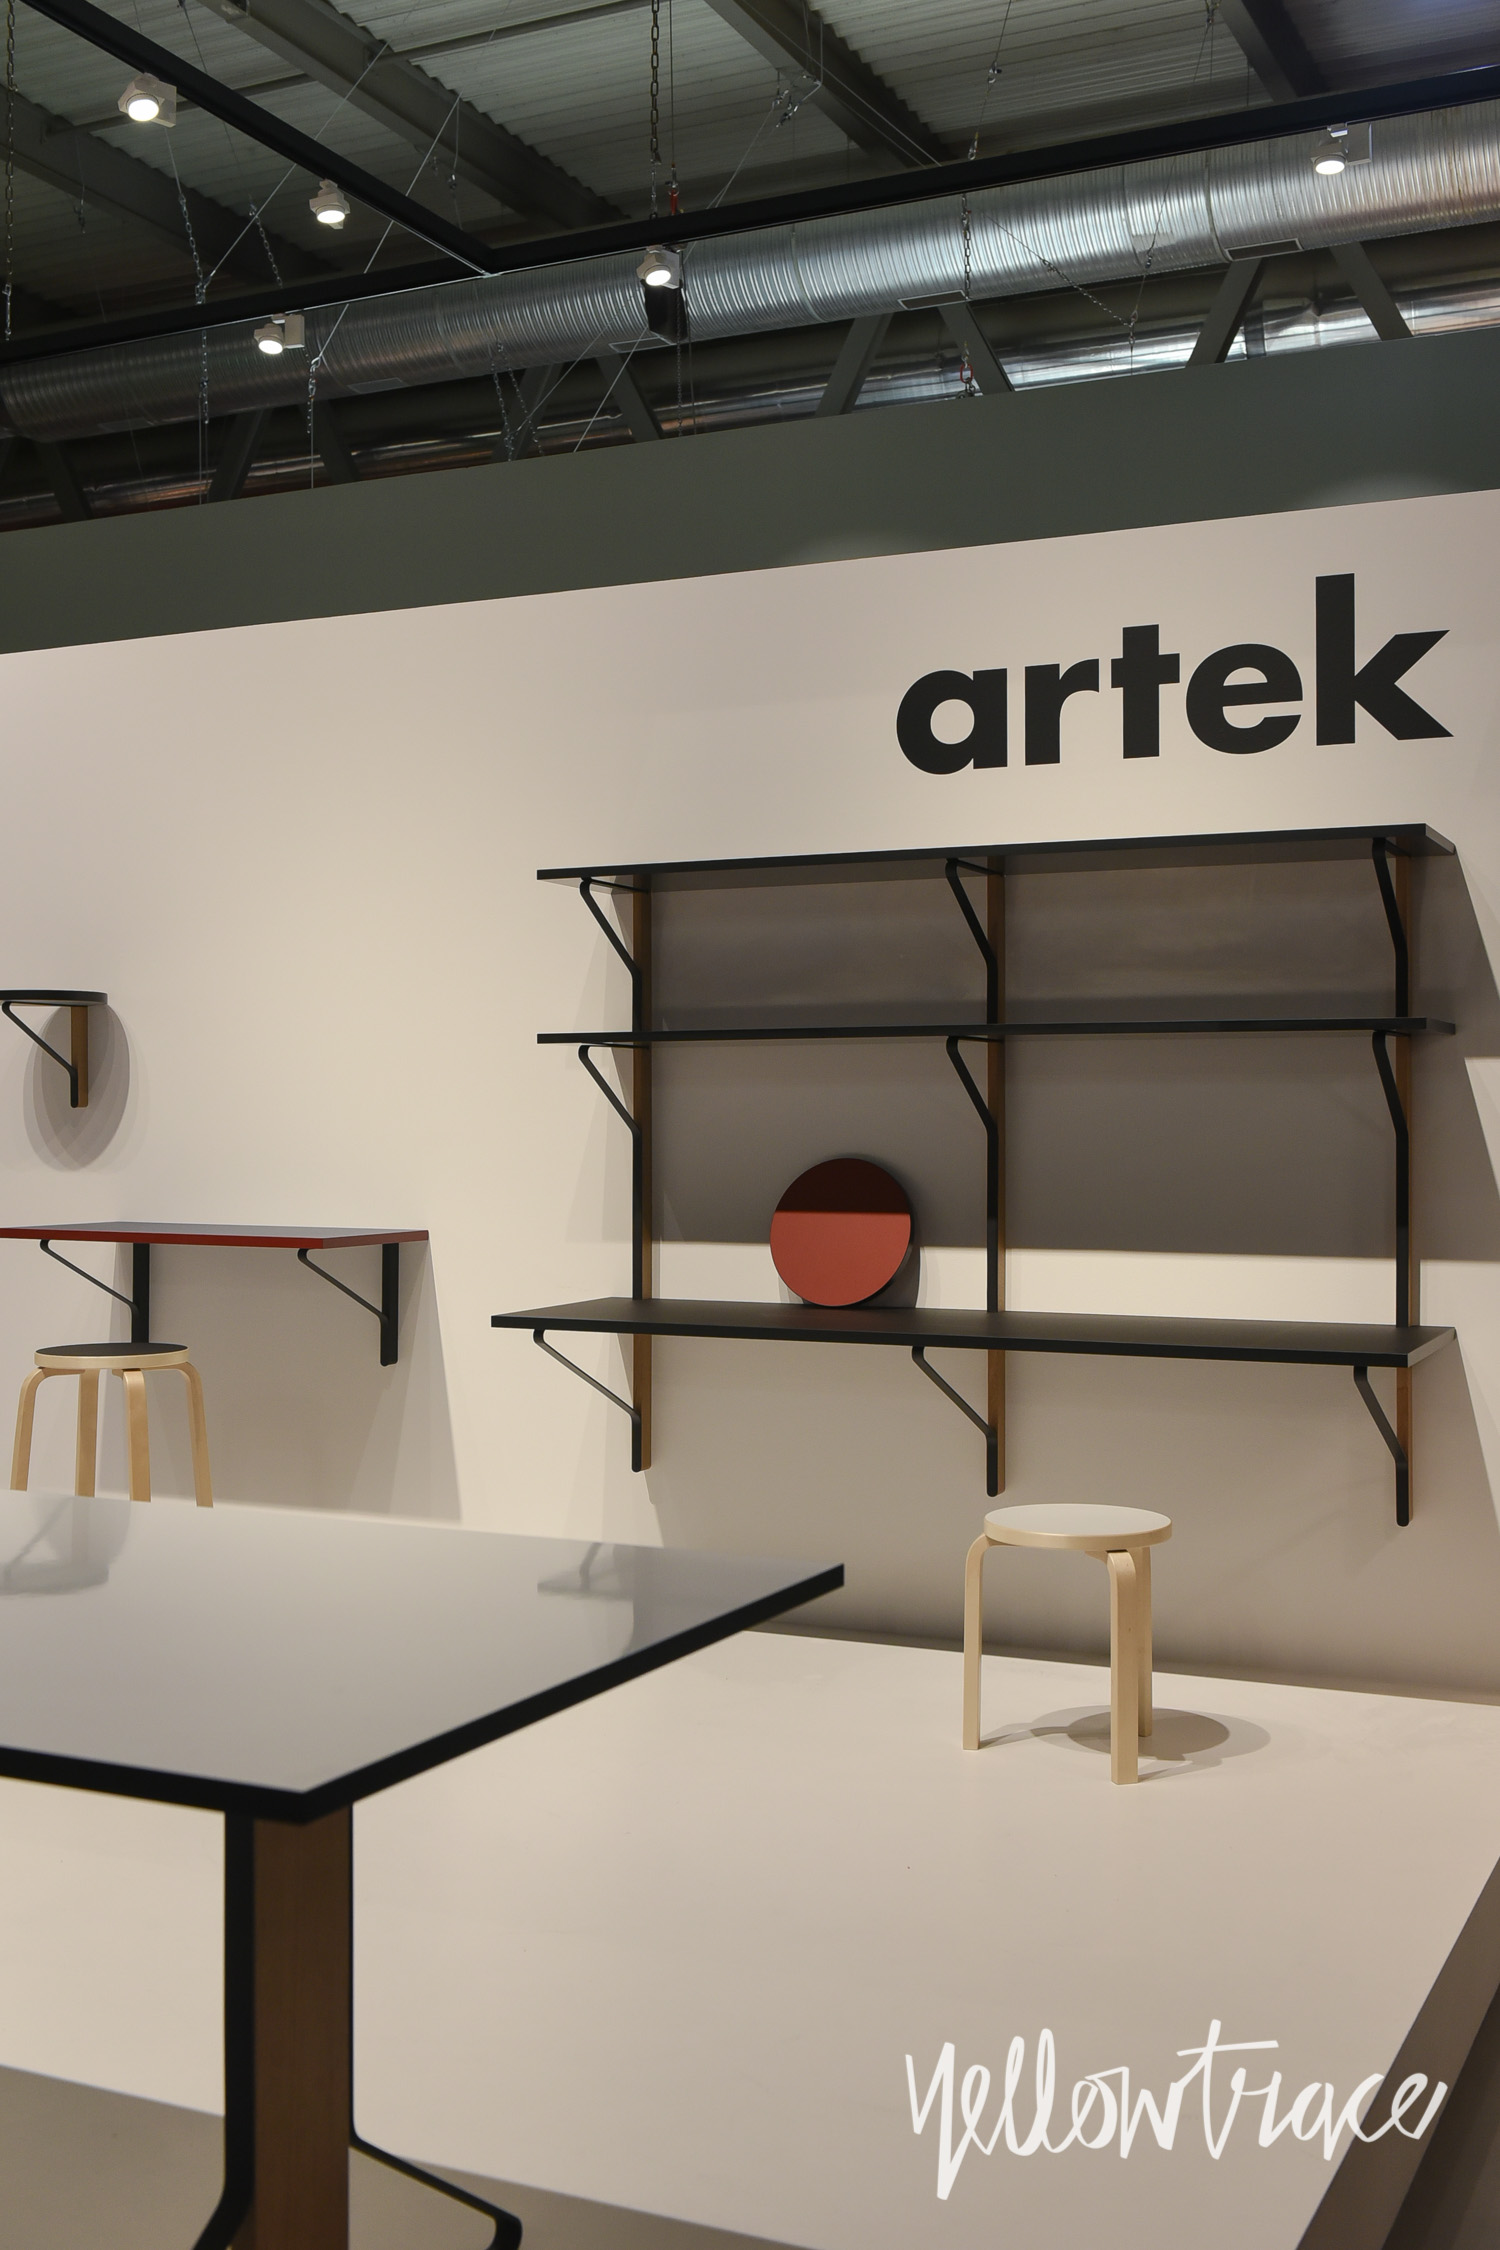 Artek stand at salone del mobile 2015 photo nick hughes for Salone del mobile stand